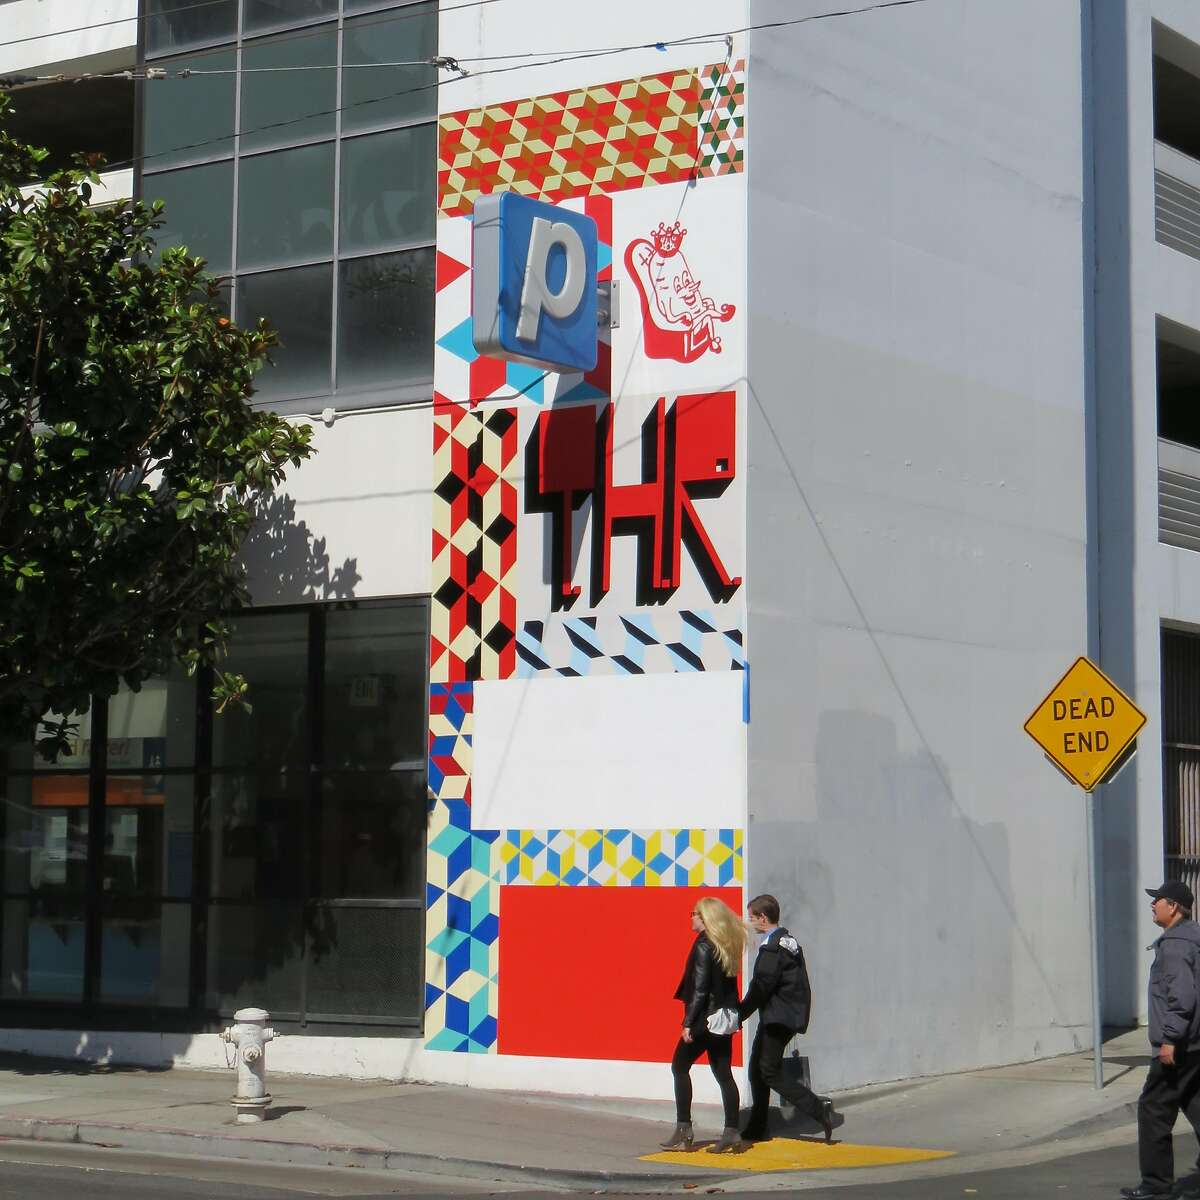 3rd Street Lower Wall Rendered by VOGUE and Mike �BAM� Tyau of ICU Art.